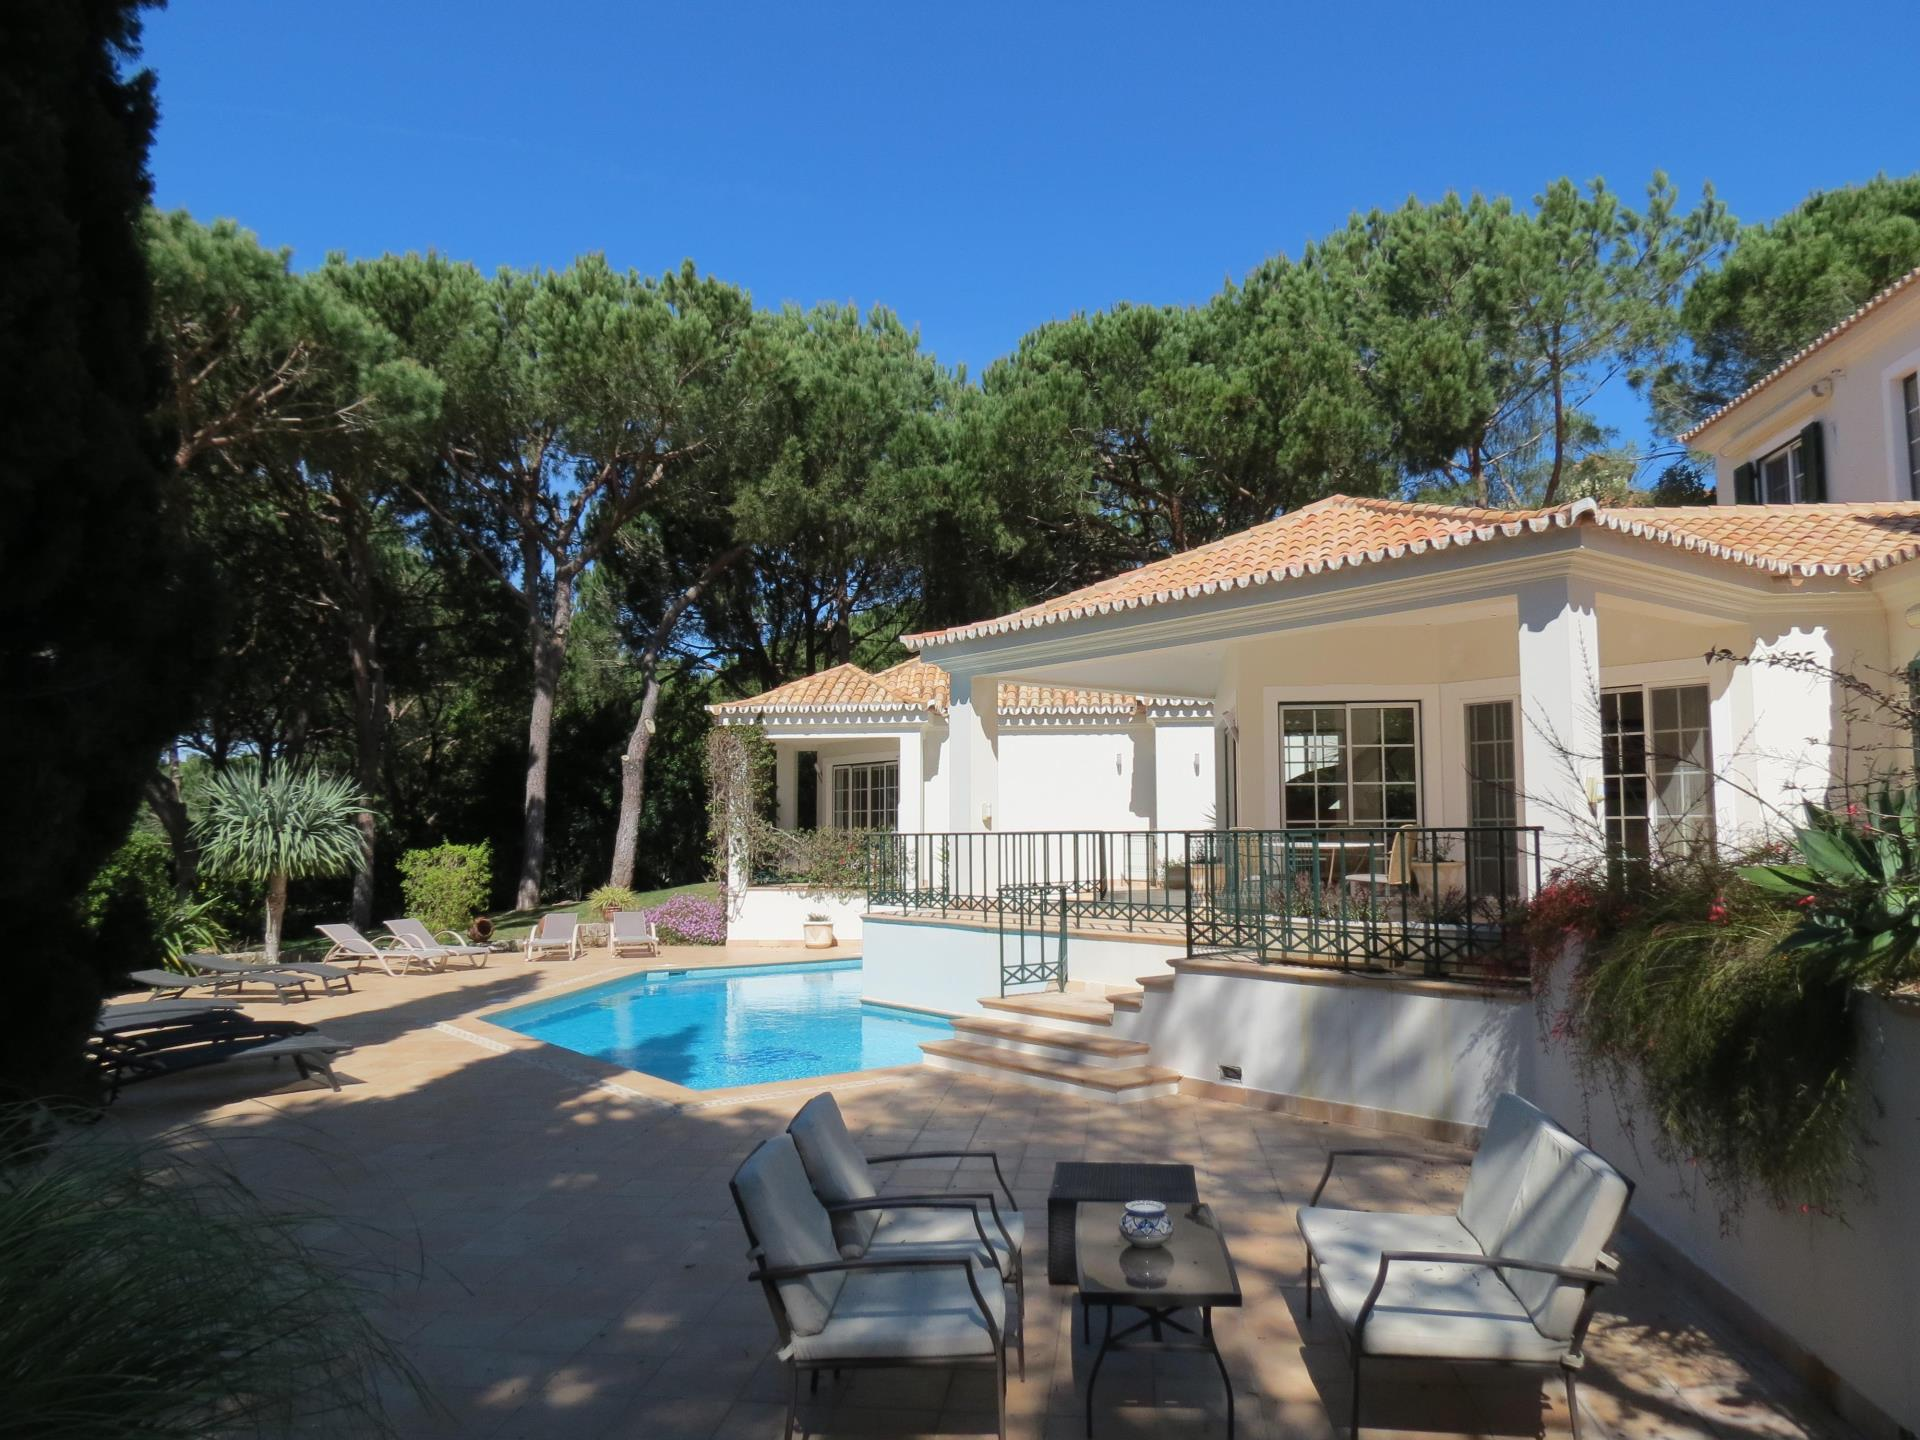 独户住宅 为 销售 在 Detached house, 4 bedrooms, for Sale Loule, Algarve 葡萄牙